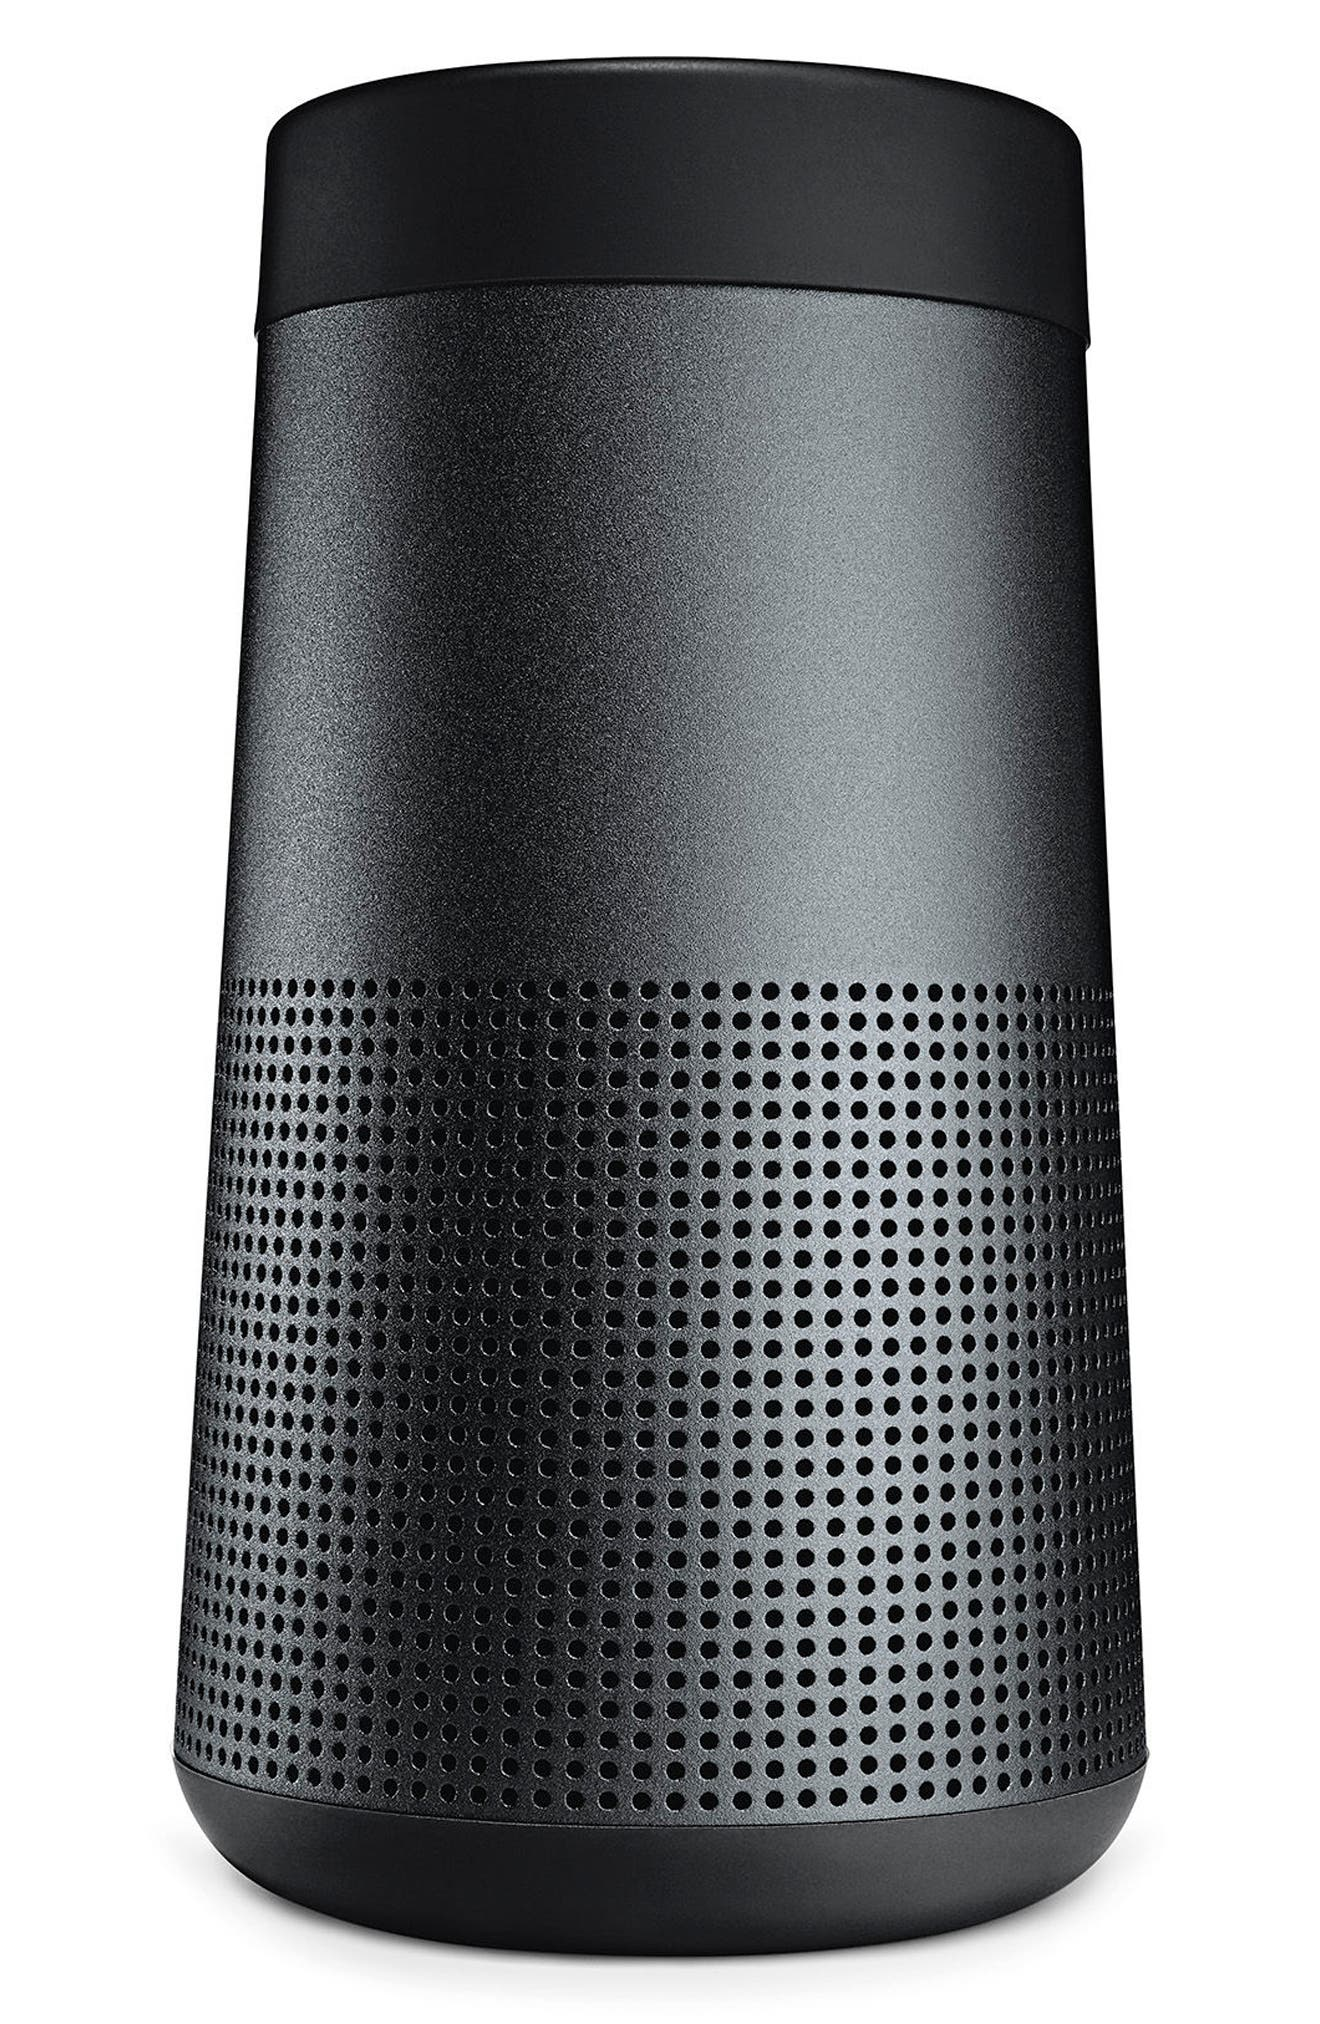 SoundLink<sup>®</sup> Revolve Bluetooth<sup>®</sup> Speaker,                             Alternate thumbnail 5, color,                             BLACK